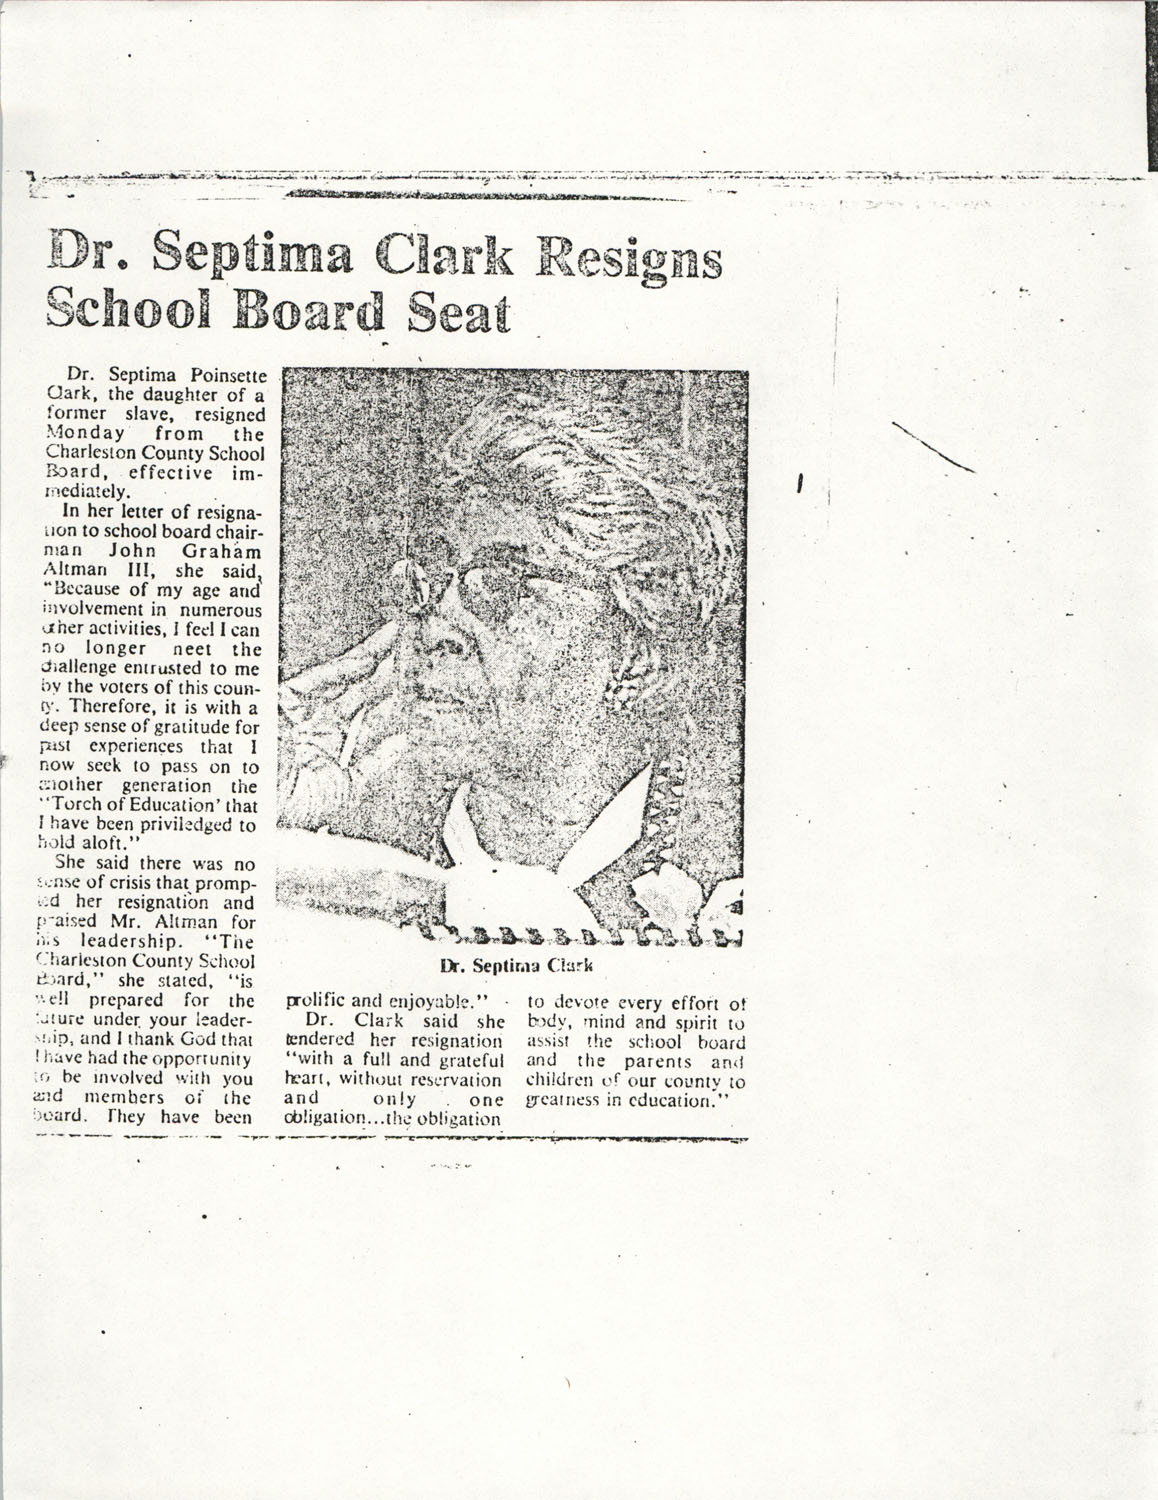 Newspaper Article, School Board Seat Resignation